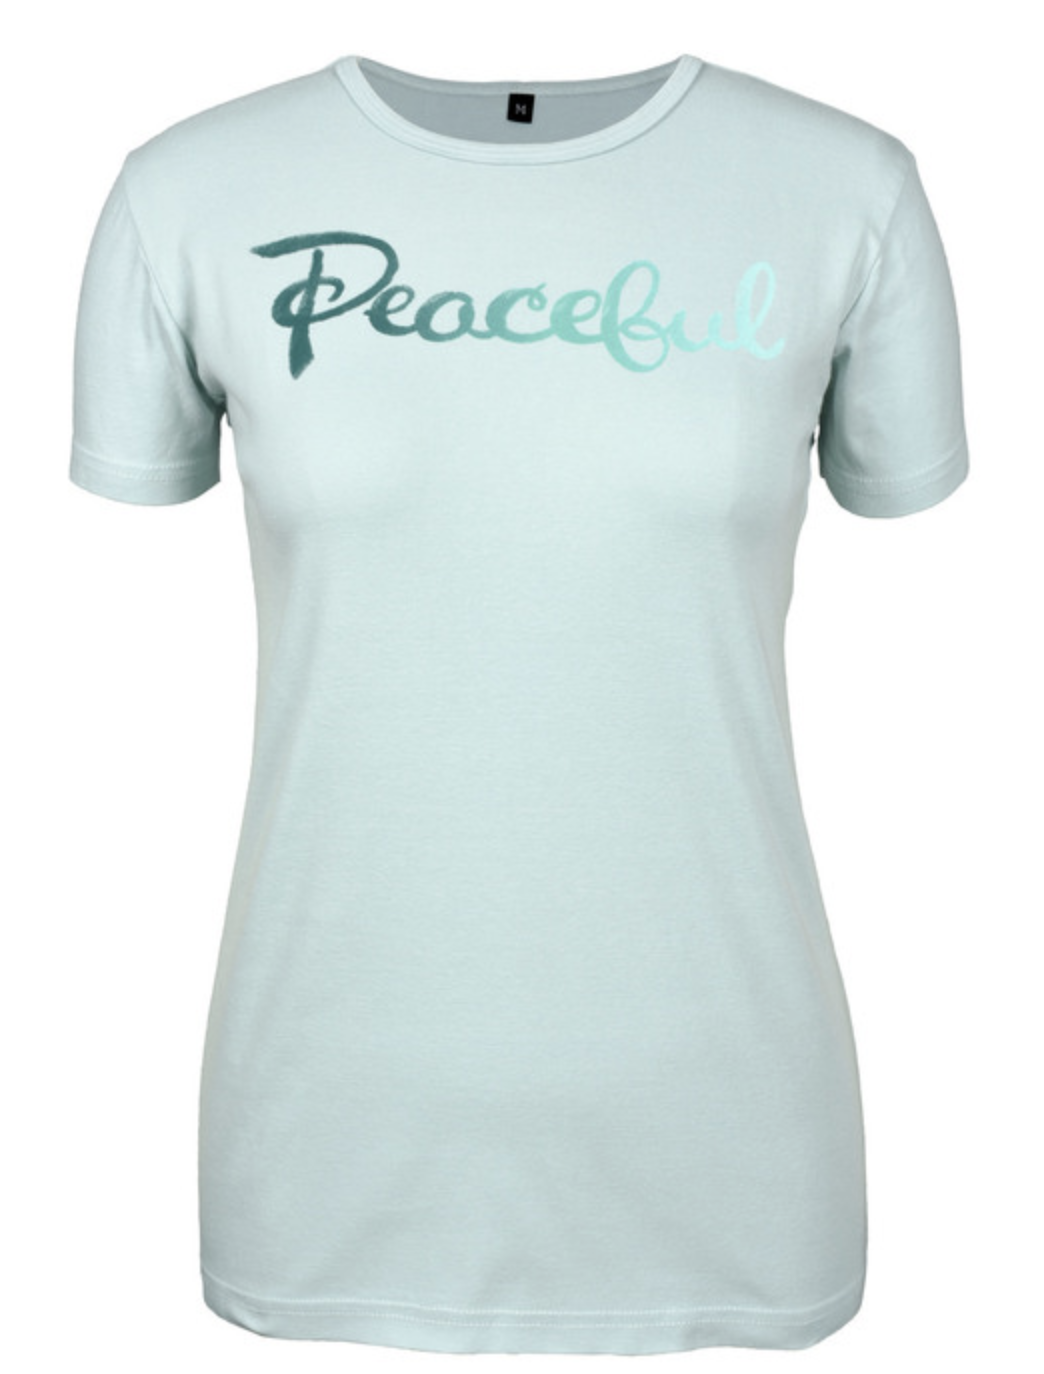 Peaceful SS Tee